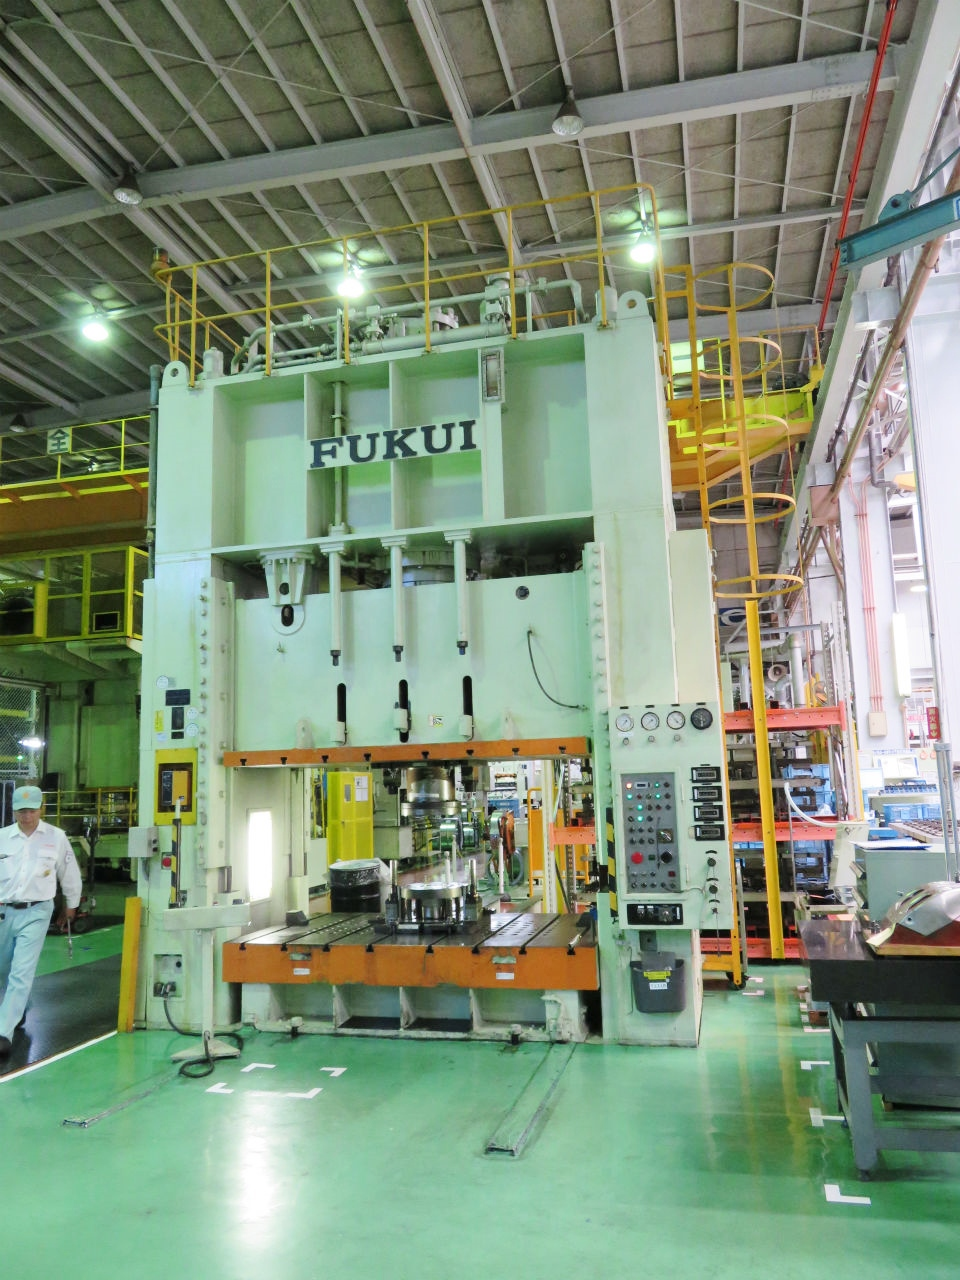 Fukui Japan  City new picture : presses hydraulic fukui japan hydraulic press c frame fukui japan ...